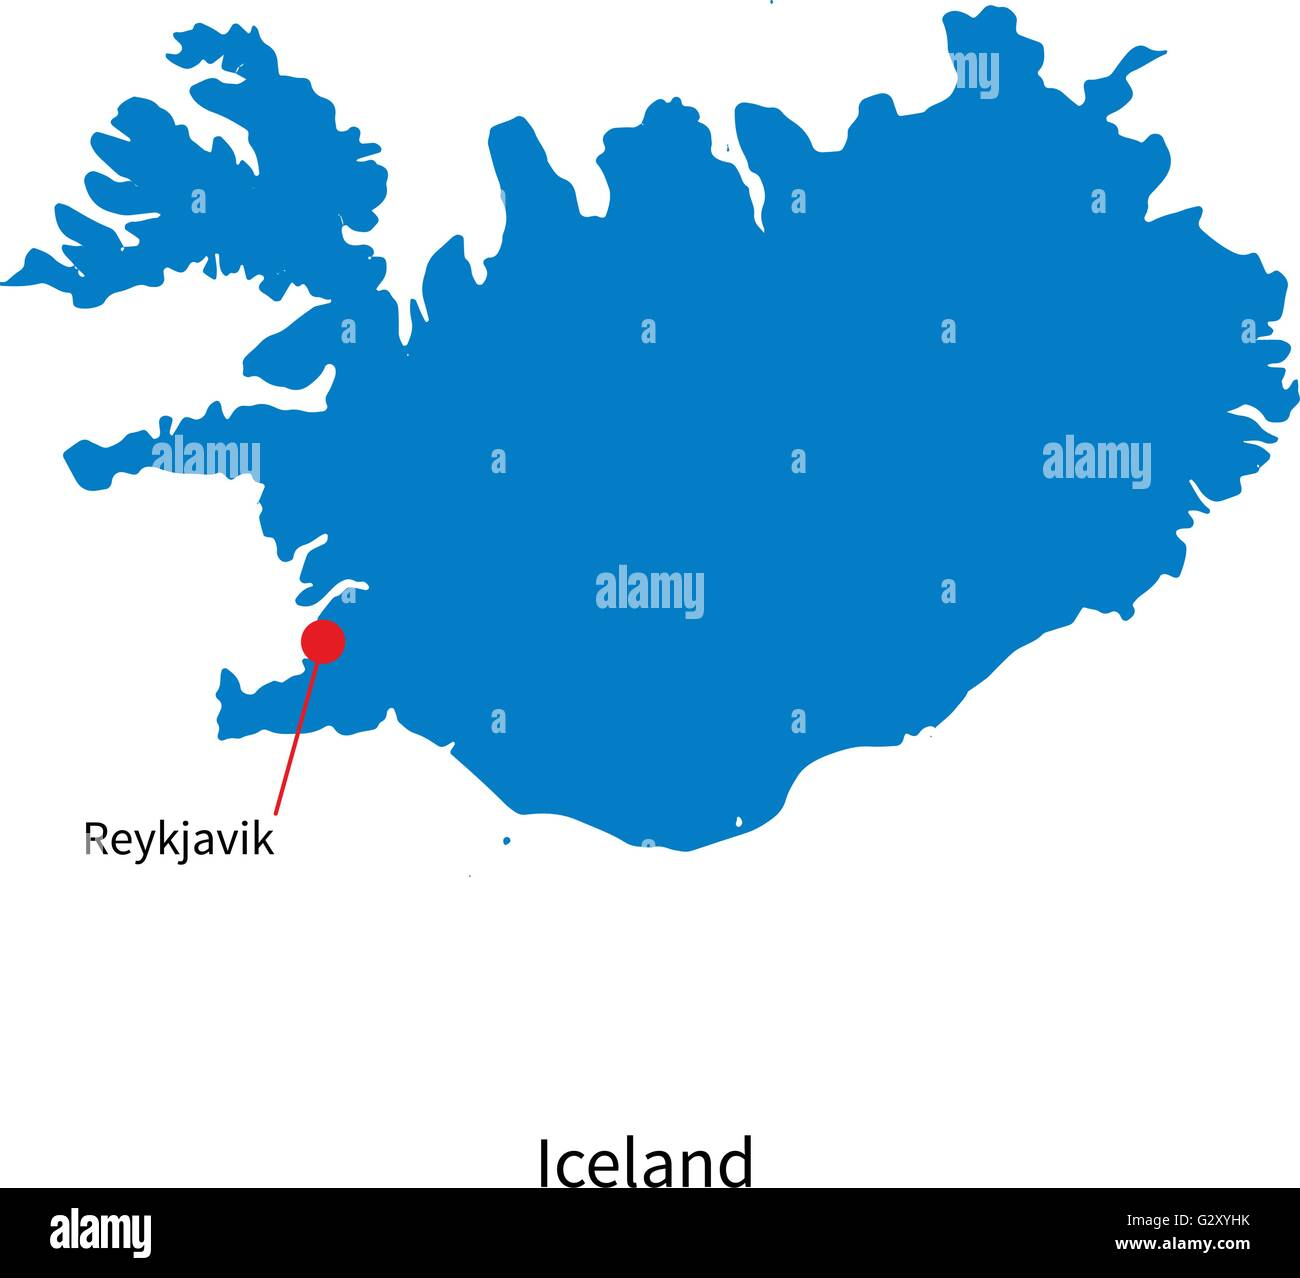 Detailed Vector Map Of Iceland And Capital City Reykjavik Stock - Iceland map world